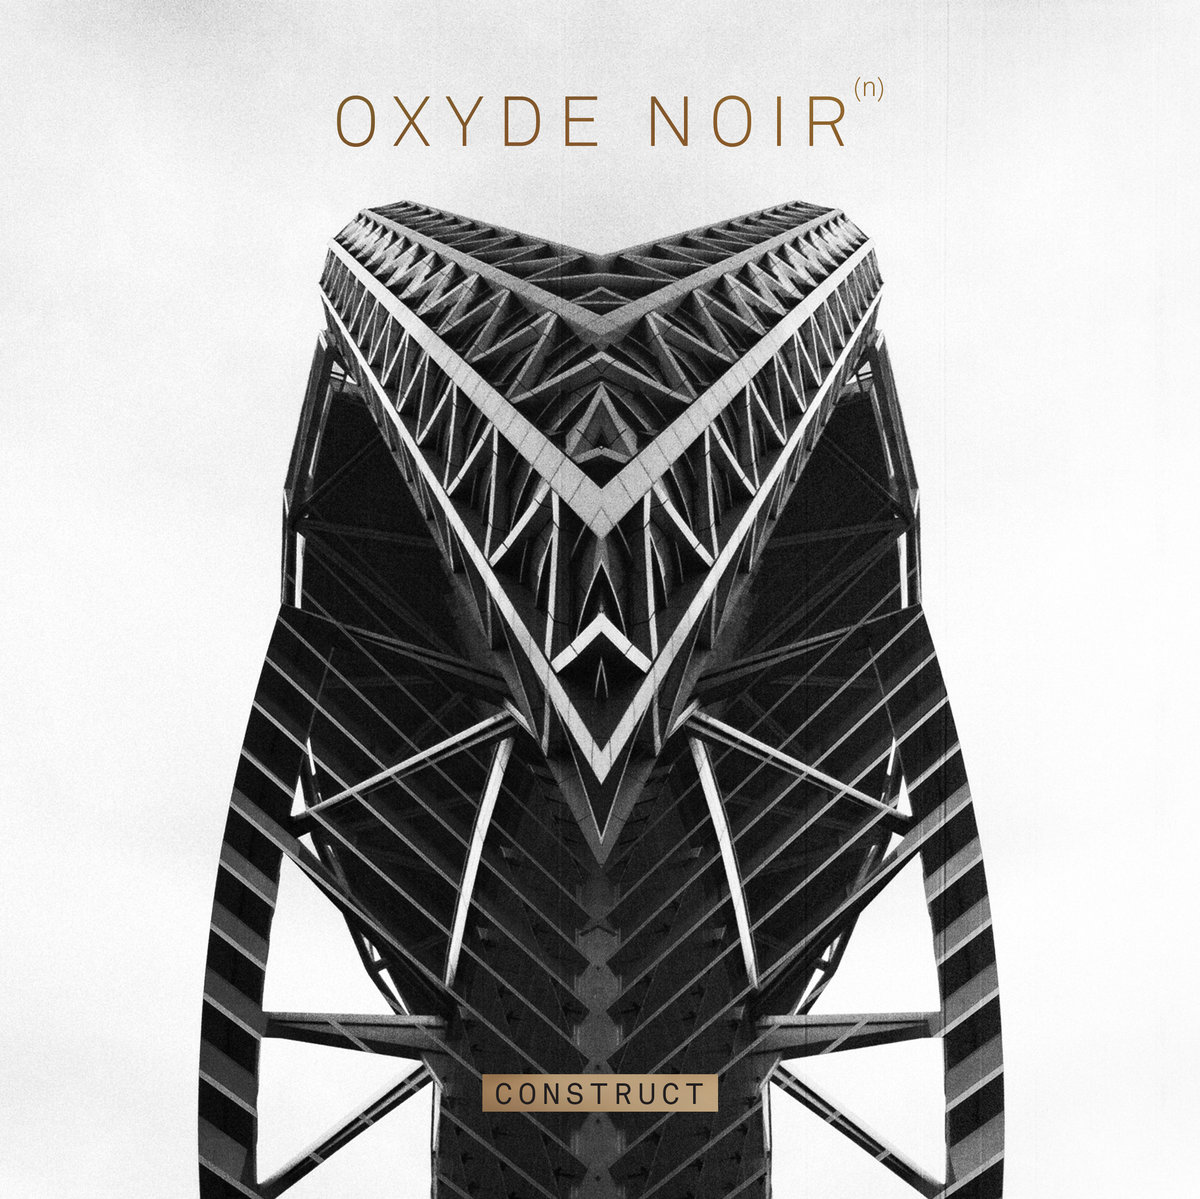 Oxyde Noir album artwork